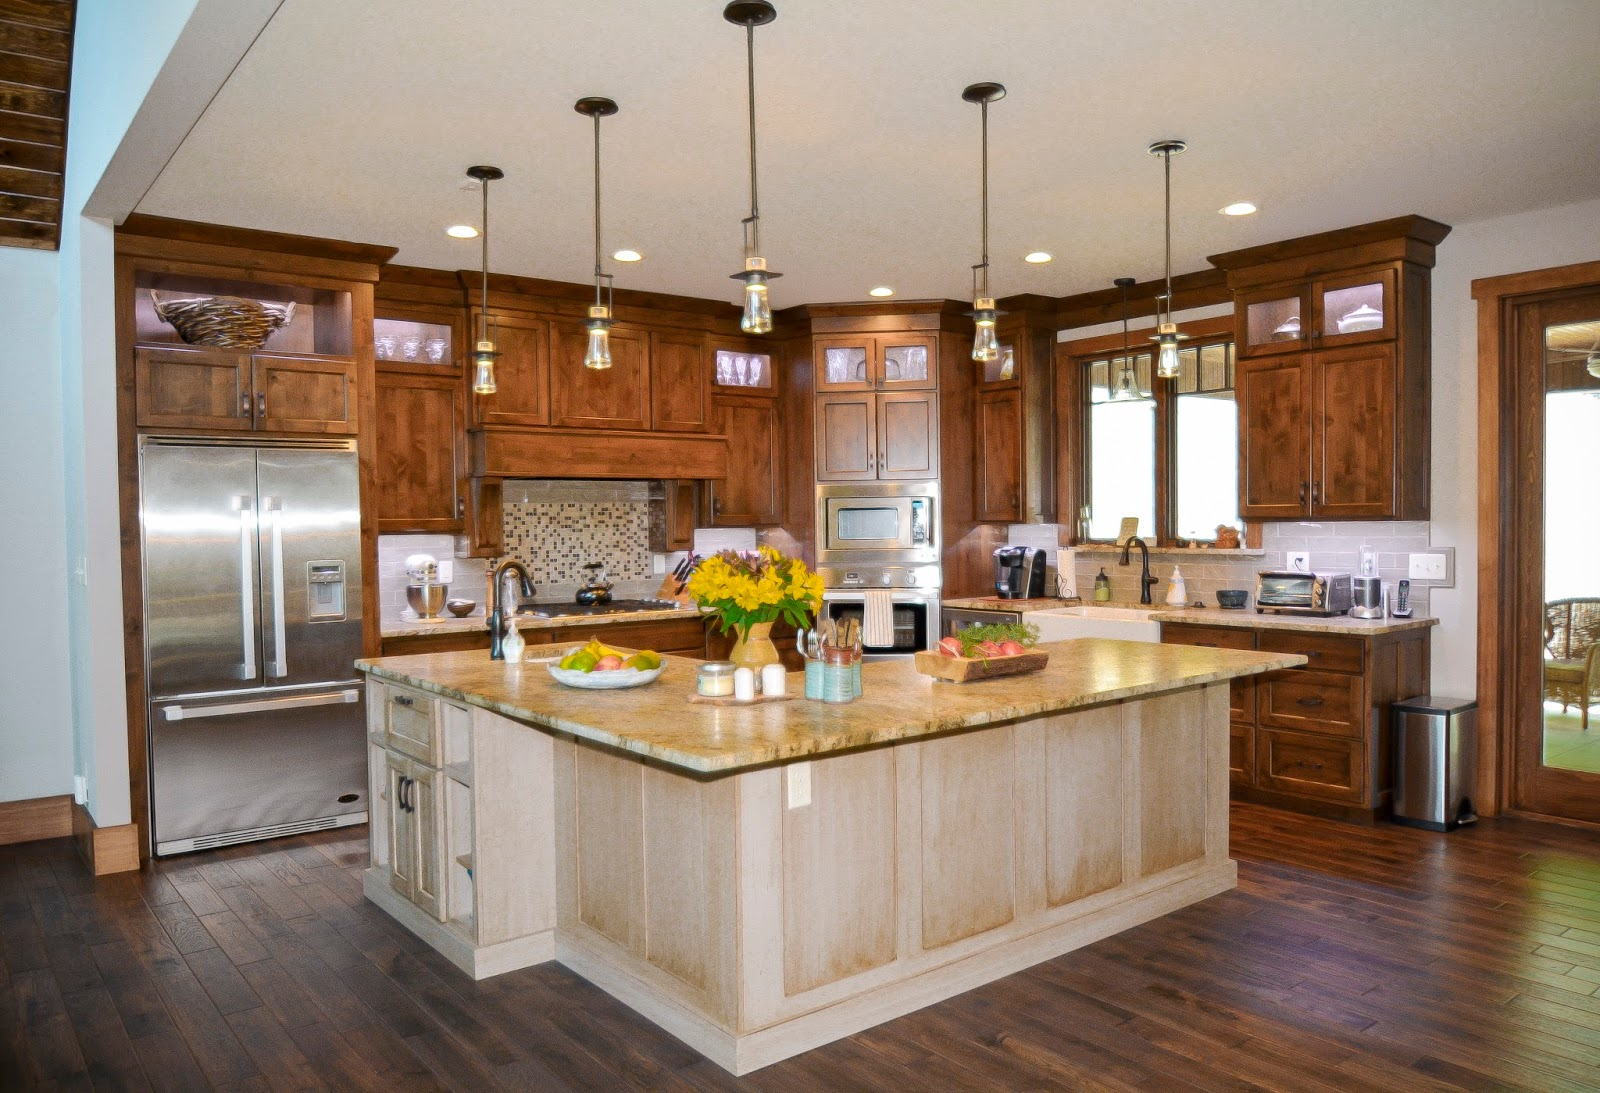 Kitchen design trends for 2016 Kitchen design home visit